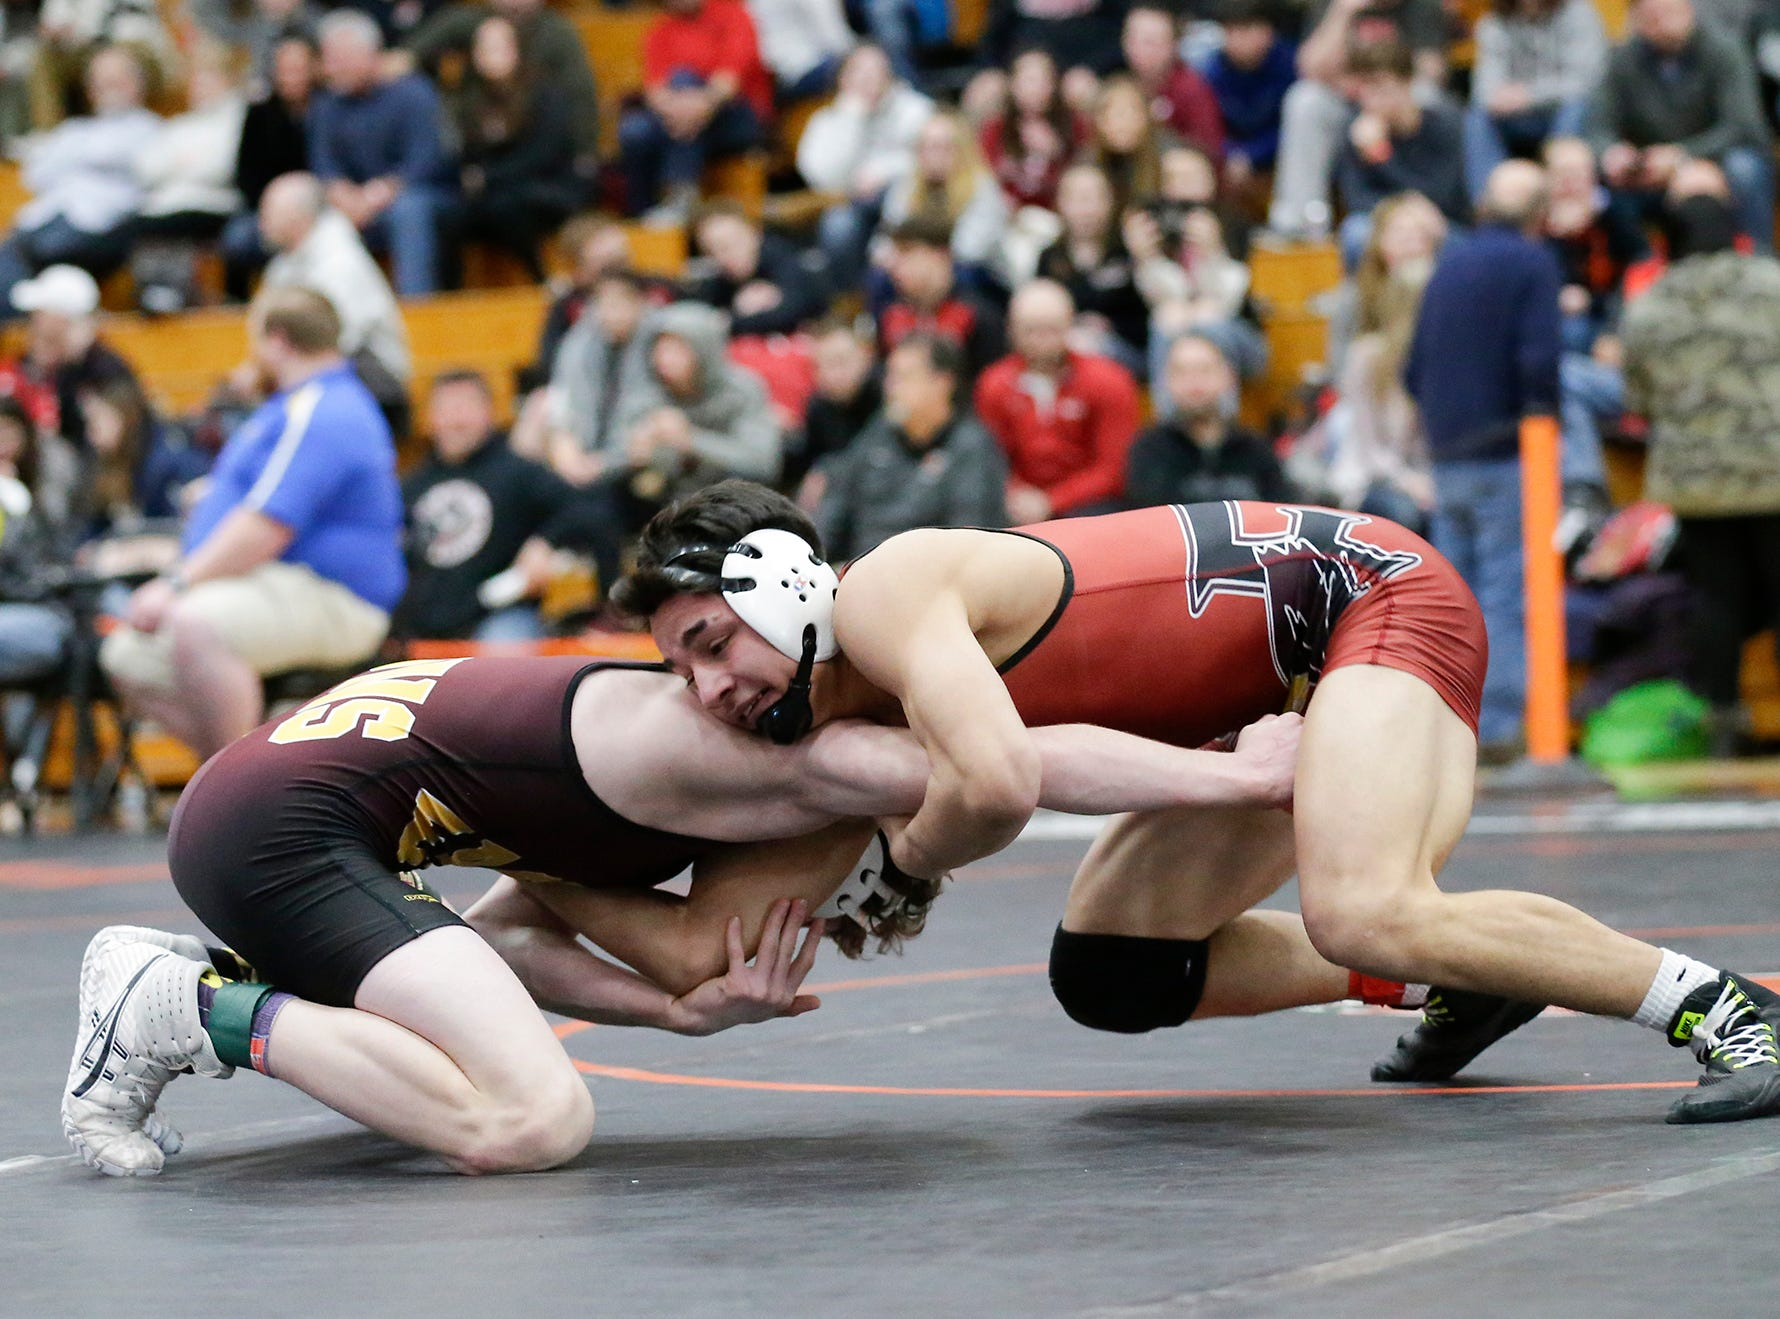 Issac Ortegon of Fond du Lac High School wrestles Jordan Ward of West Bend East High School in the 138 pound weight class during the WIAA sectionals Saturday, February 16, 2019 in Hartford, Wis. Ortegon won with a score of 20-6. Doug Raflik/USA TODAY NETWORK-Wisconsin